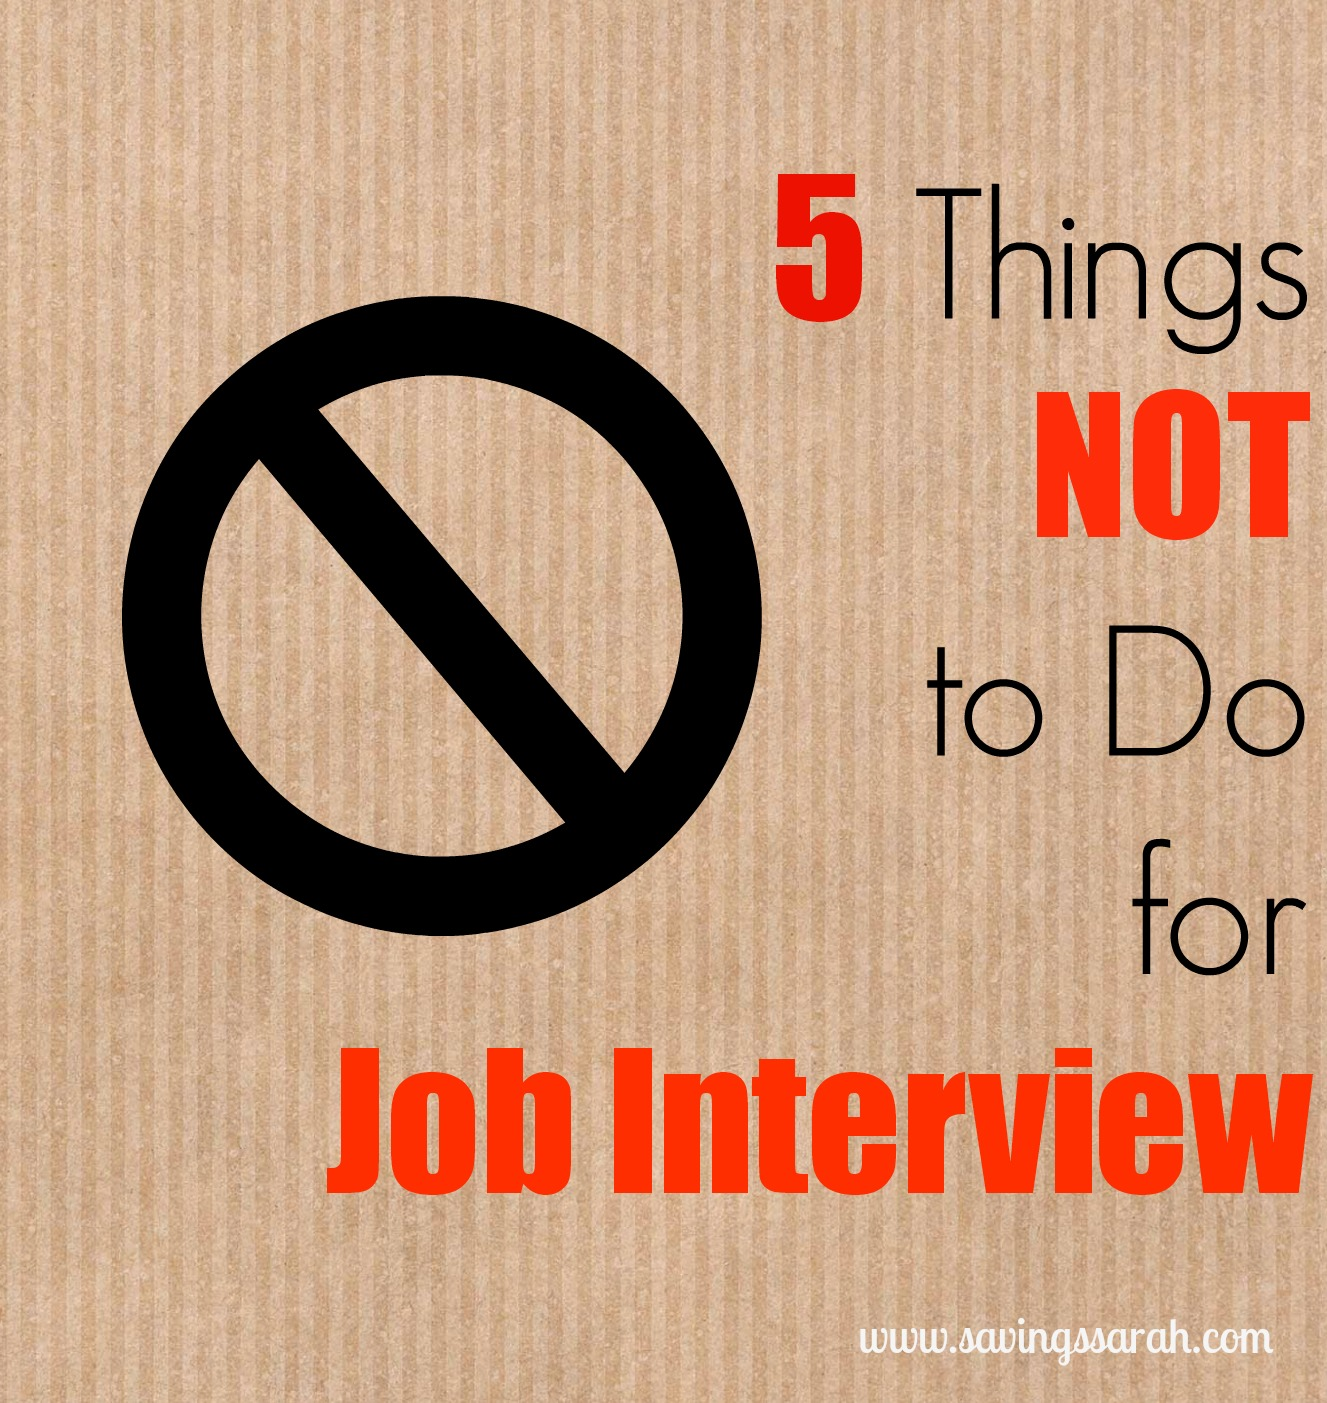 5 things not to do for job interview earning and saving sarah 5 things not to do for job interview